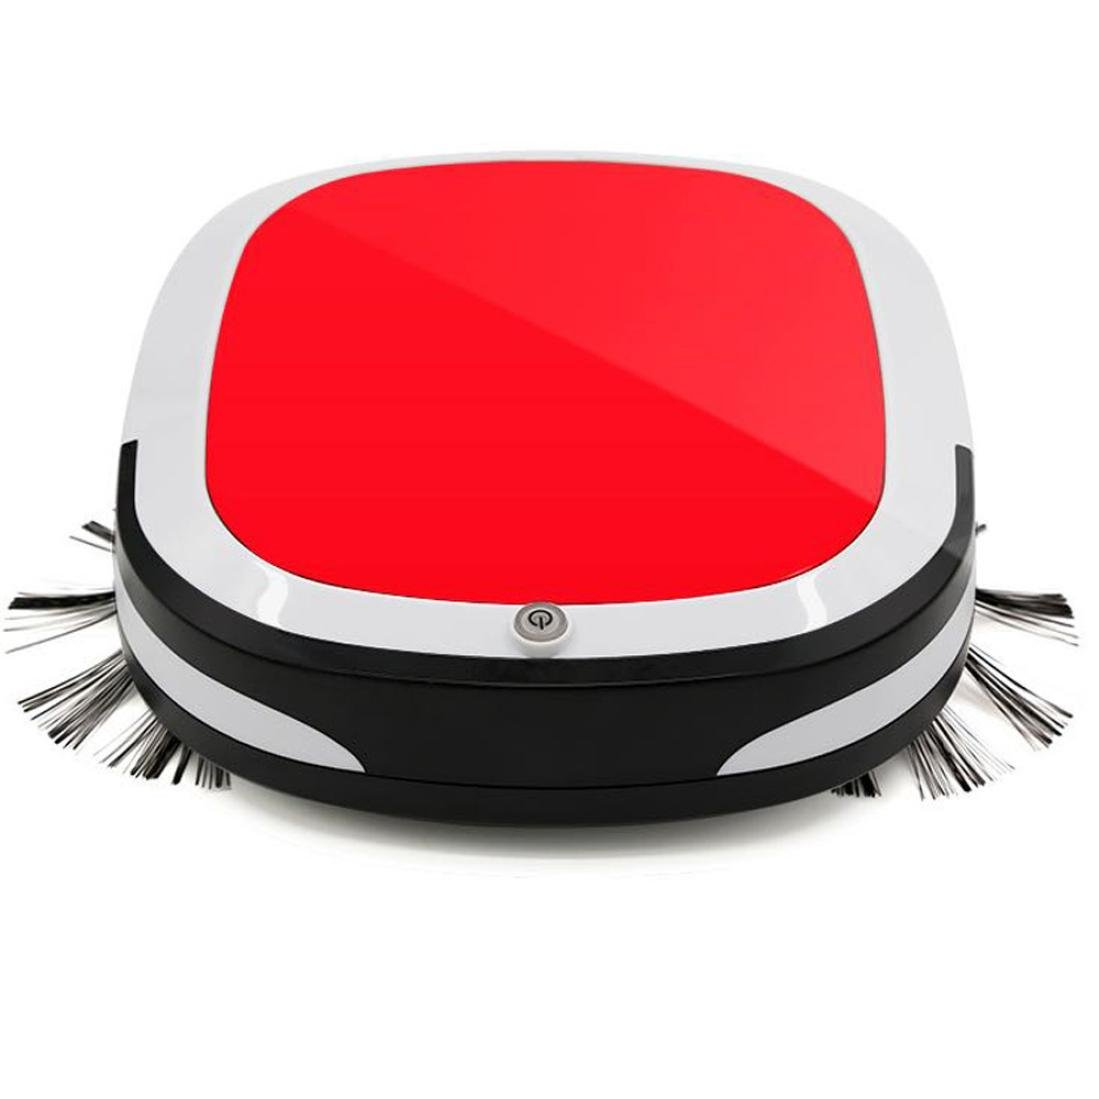 Robot Vacuum Cleaner, Robotic Vacuum Cleaner with Smart Mopping [Dry Wet Sweeping Mop], Self-charging & Drop-sensing Technology, for Hard floor (Red)